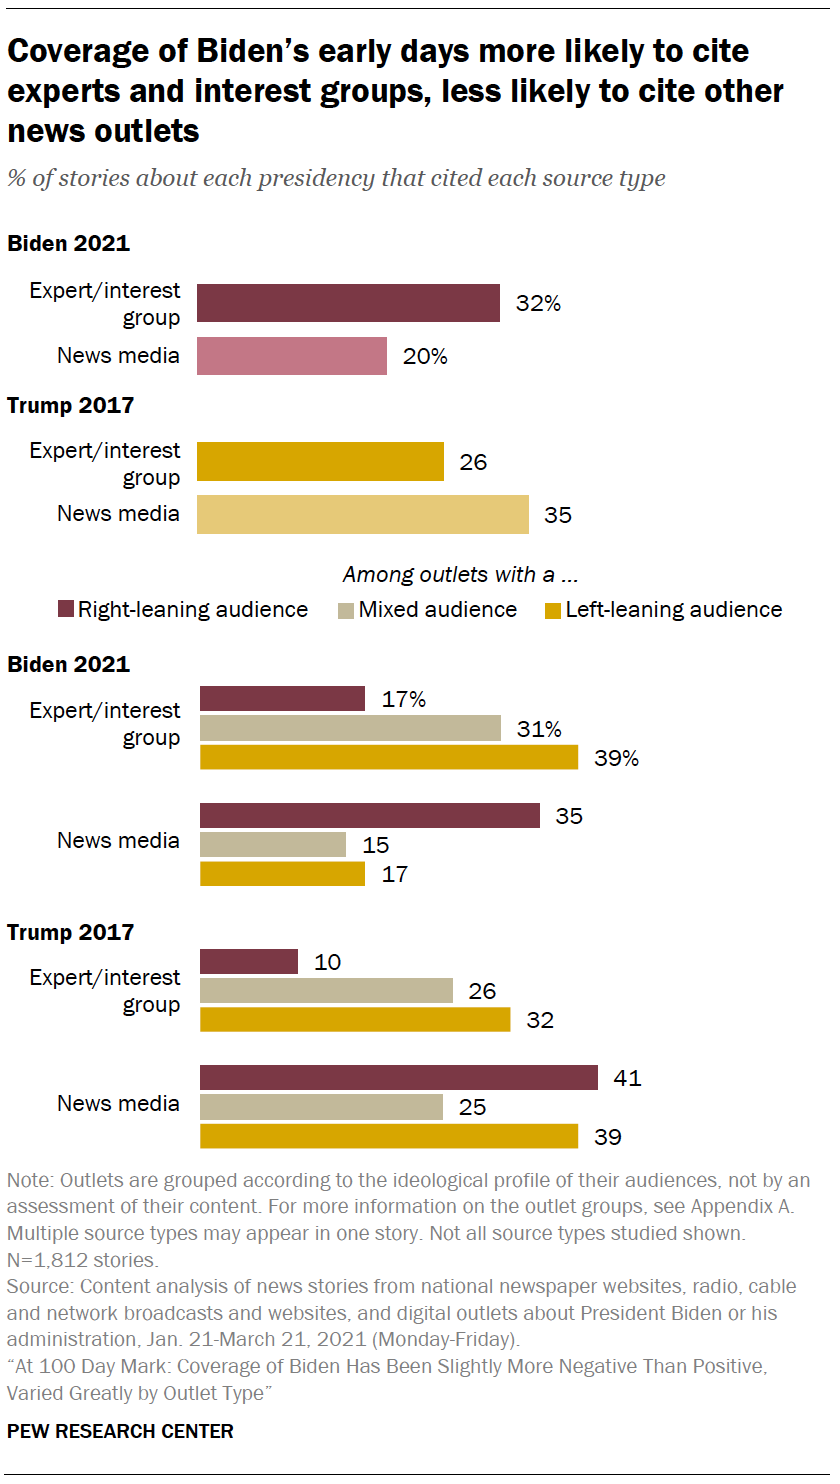 Coverage of Biden's early days more likely to cite experts and interest groups, less likely to cite other news outlets